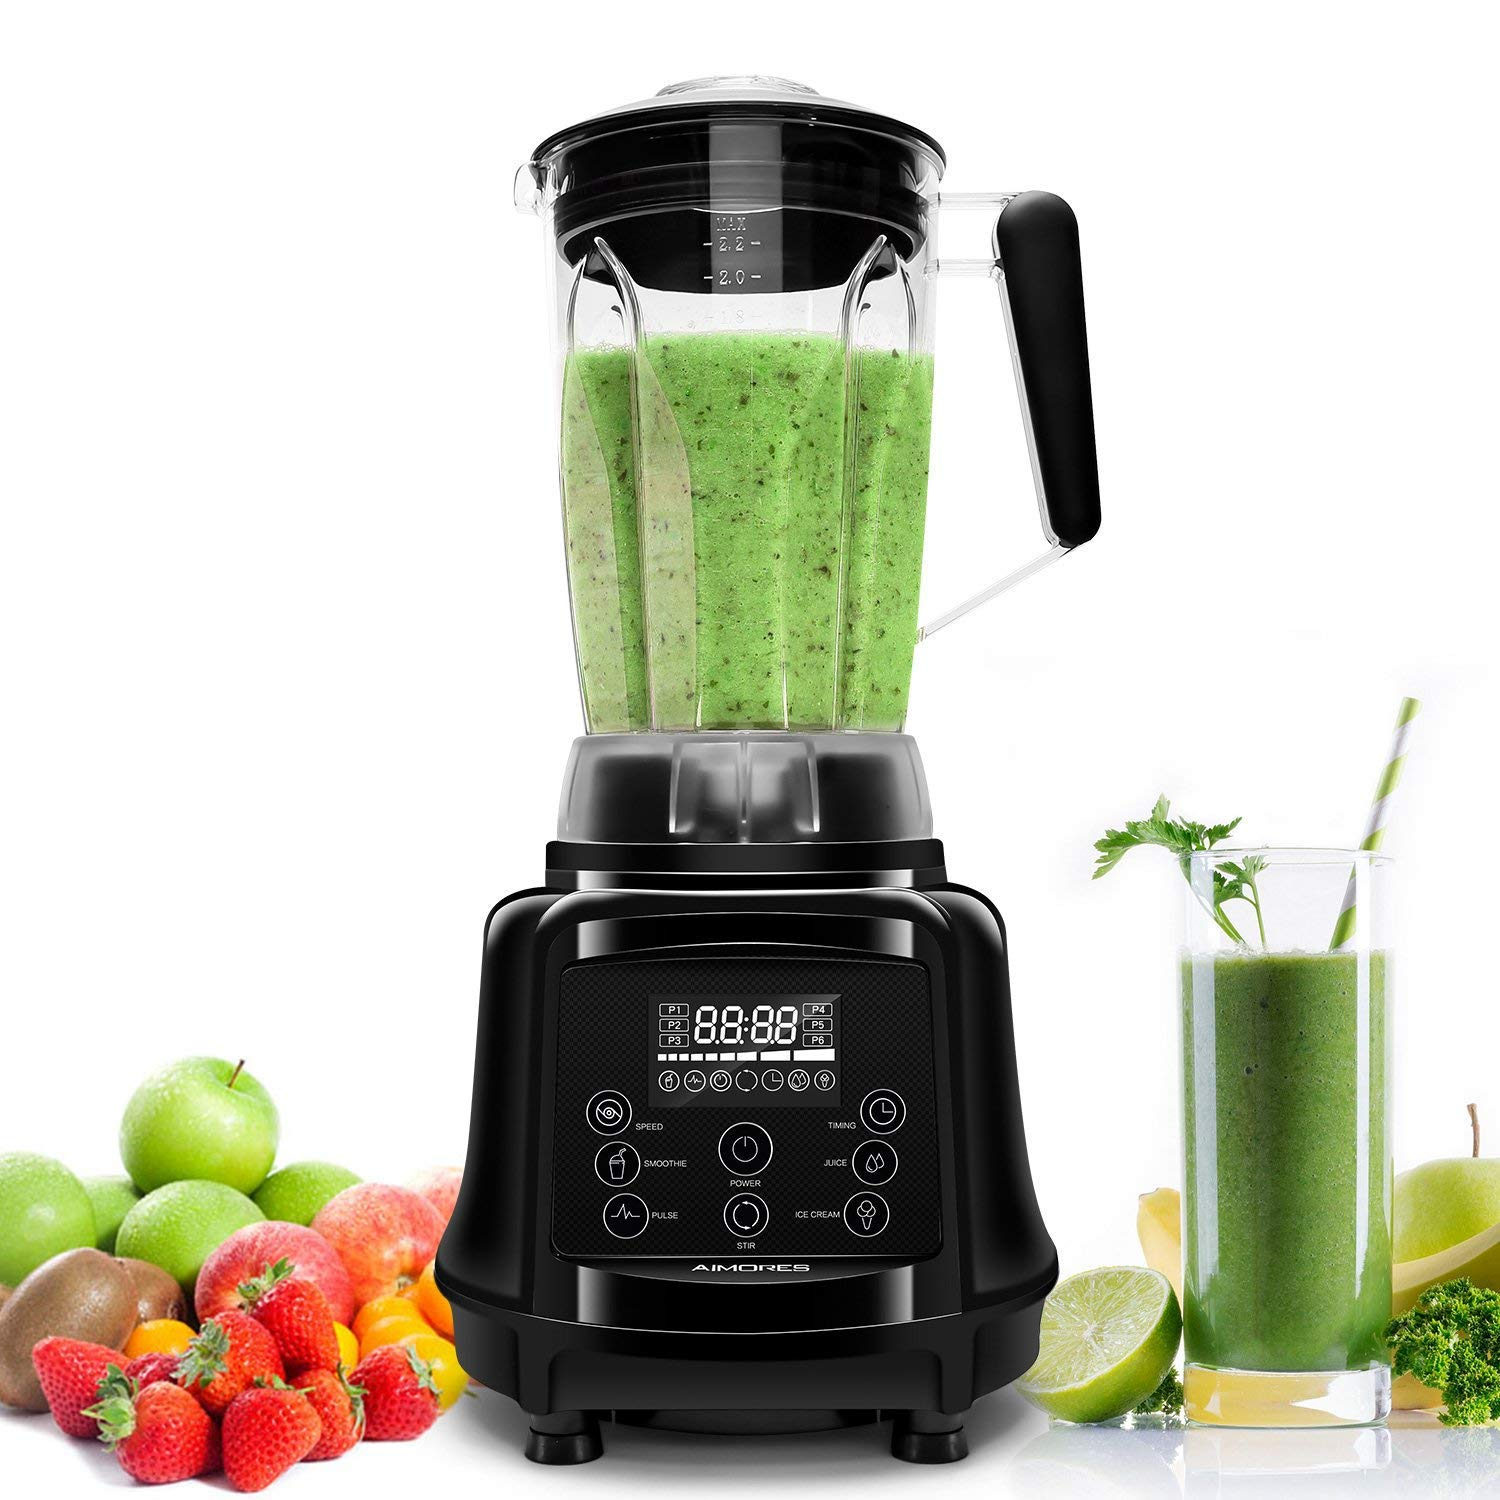 ISUN Aimores Commercial Blender for Shakes and Smoothies 75oz High-Speed Programmed Kitchen Blender, Smoothie Maker